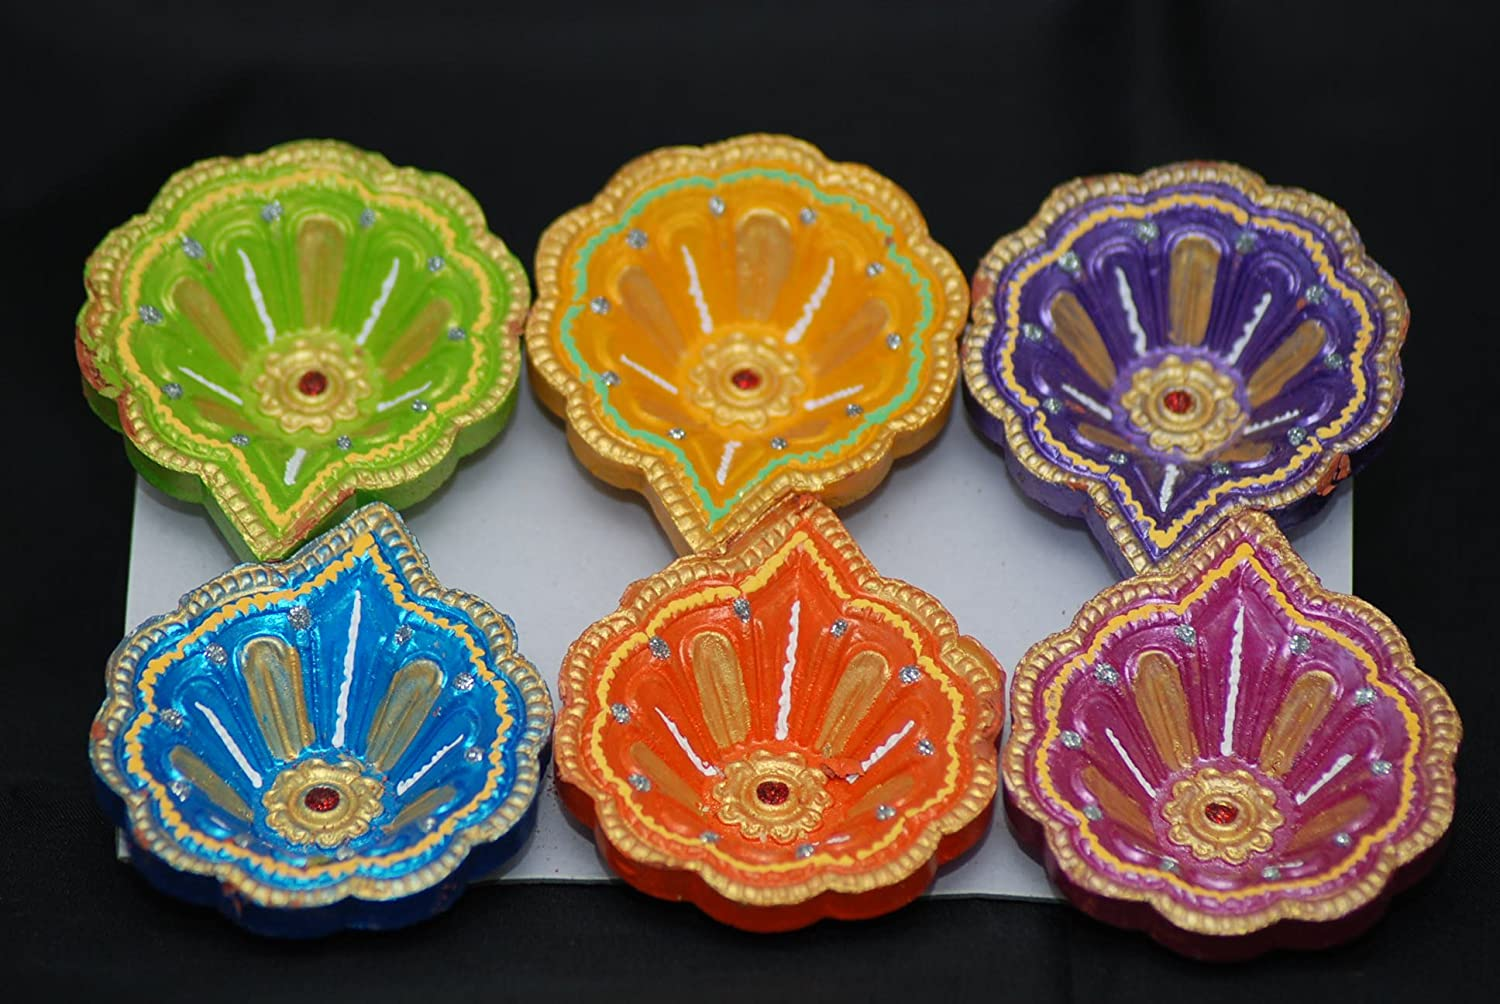 Assorted Colour Diwali Diya with Gold and Glitter Pack of 6 Gifts and More Gifts